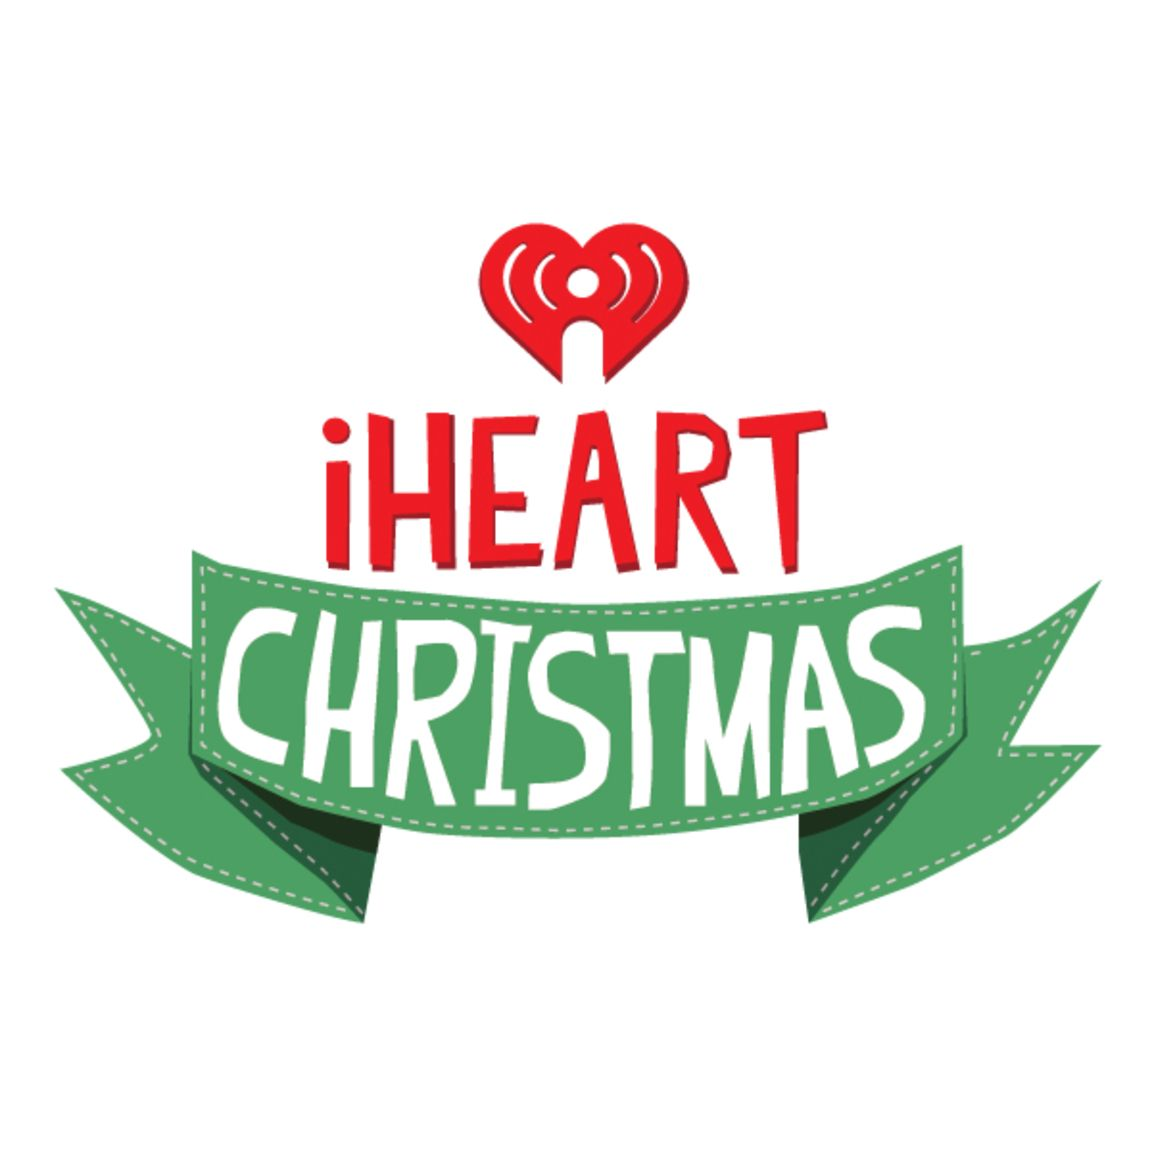 Listening to my fave station: iHeartChristmas ♫ on #iHeartRadio ...